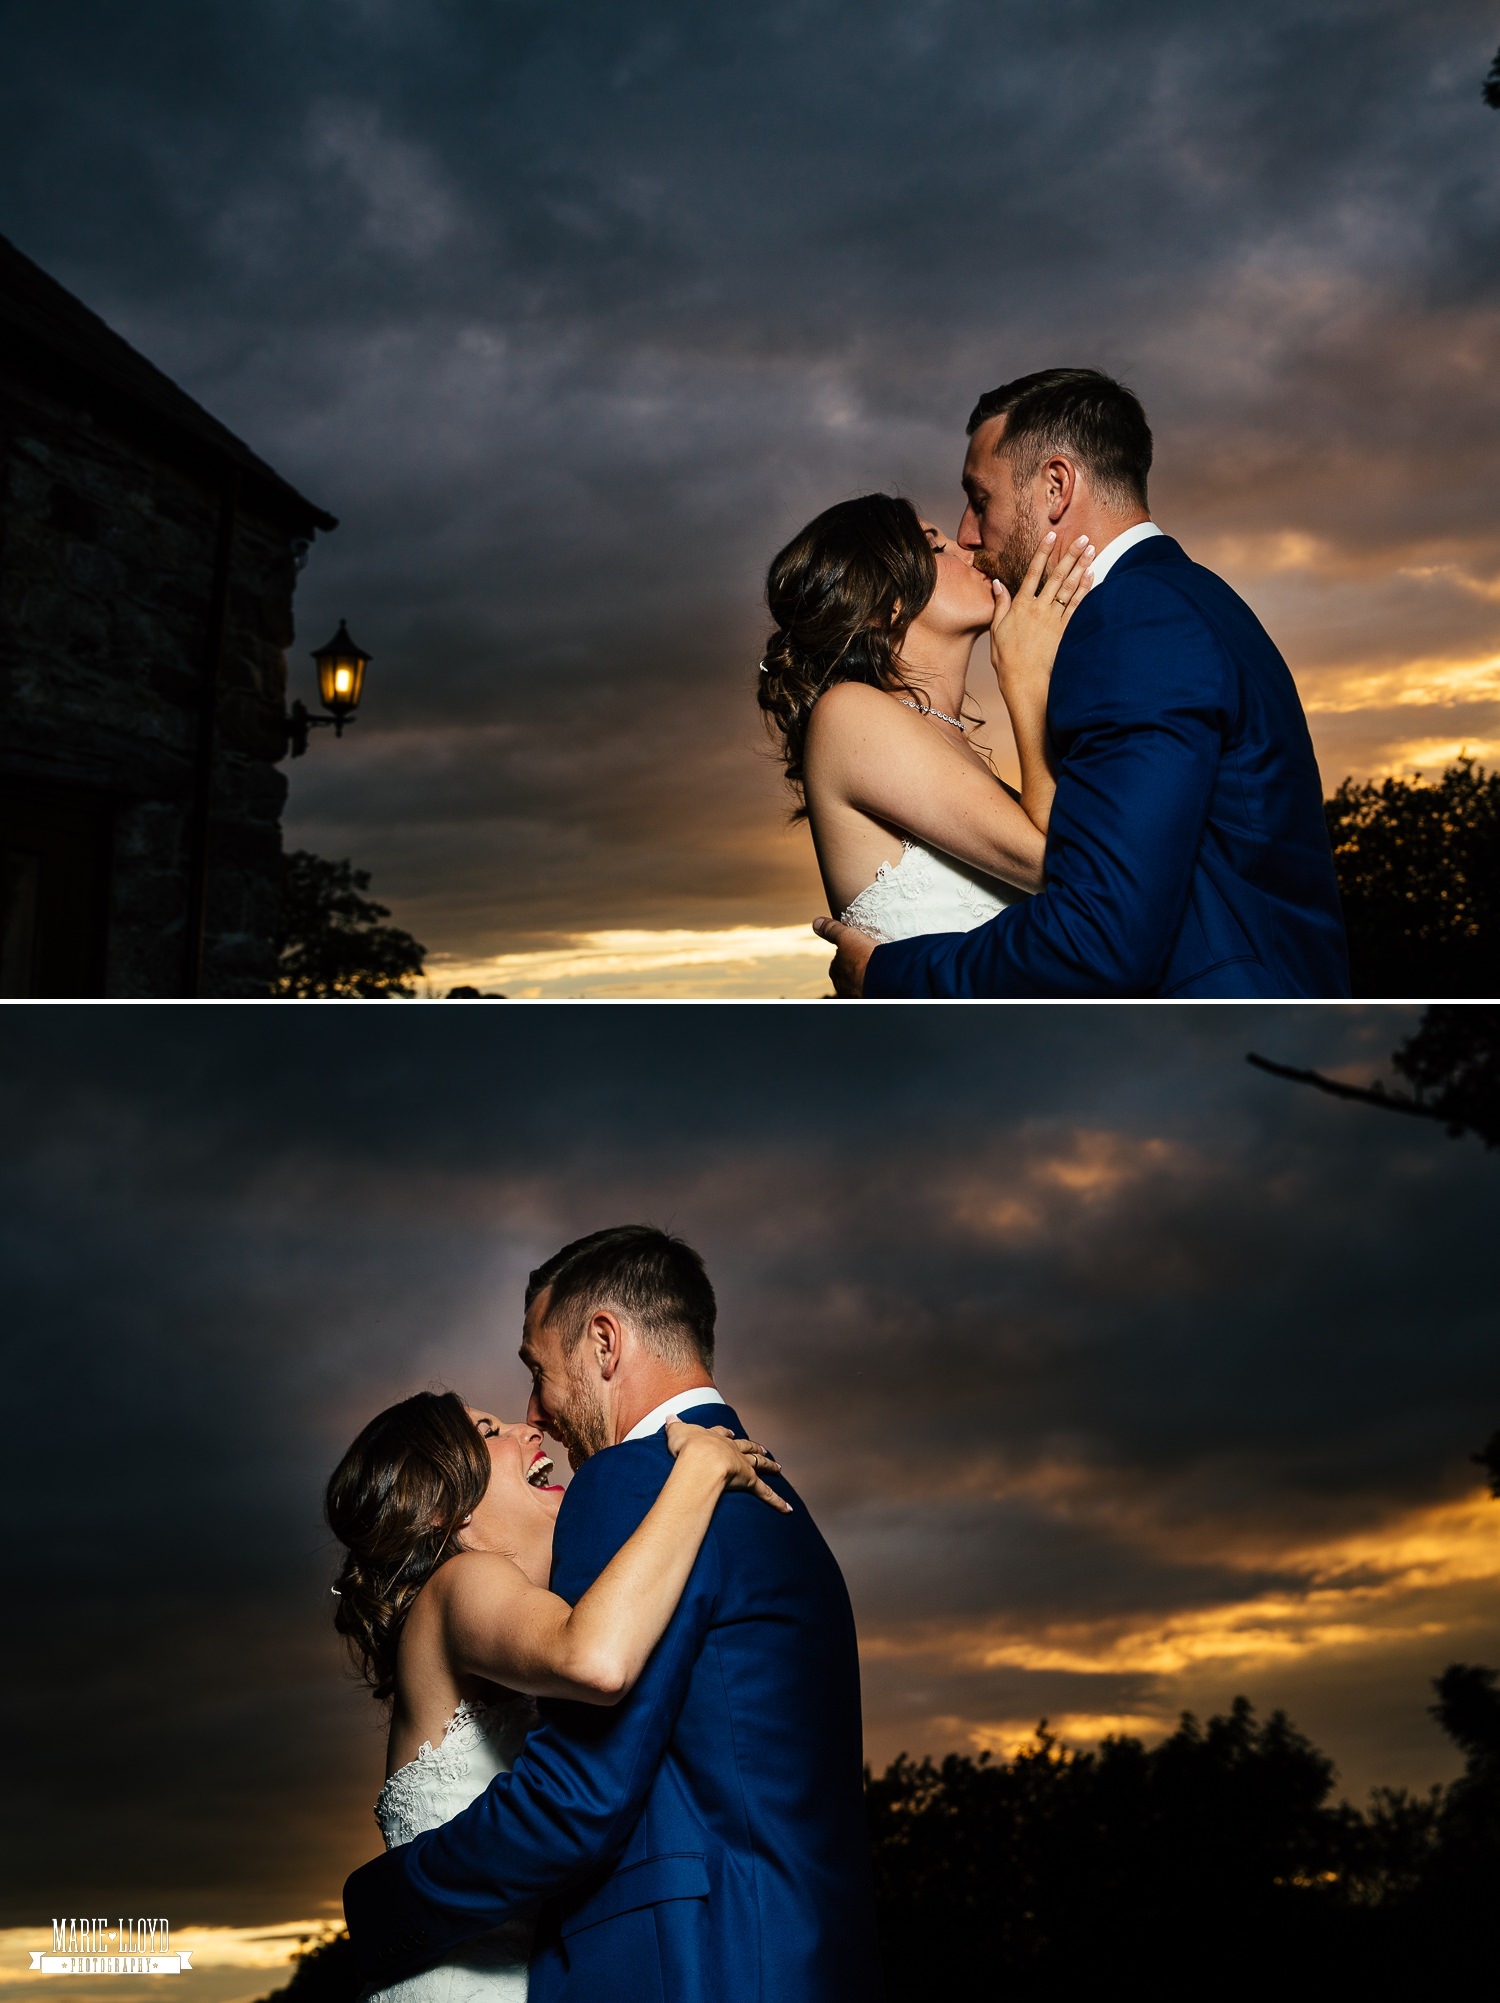 Wedding Photography kiss in the sunset at Plas Isaf, North Wales